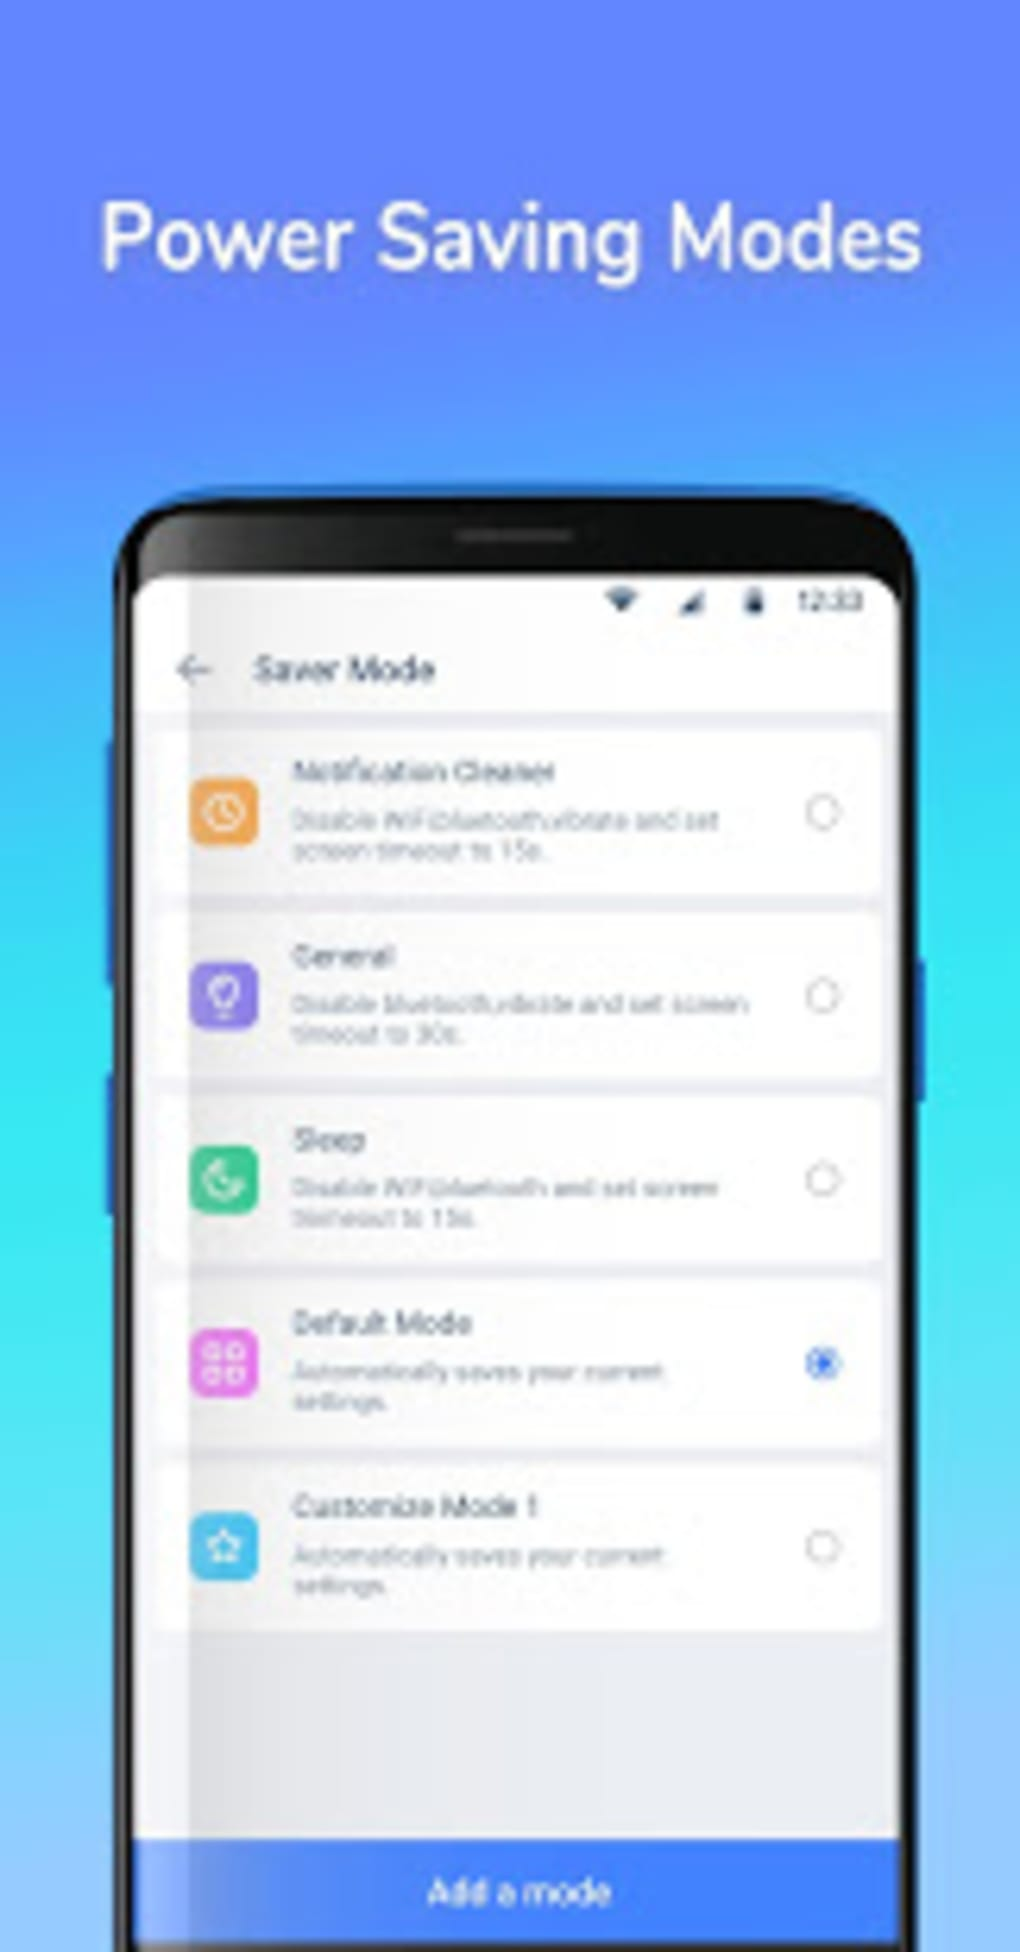 Pasco Battery Manager for Android - Download